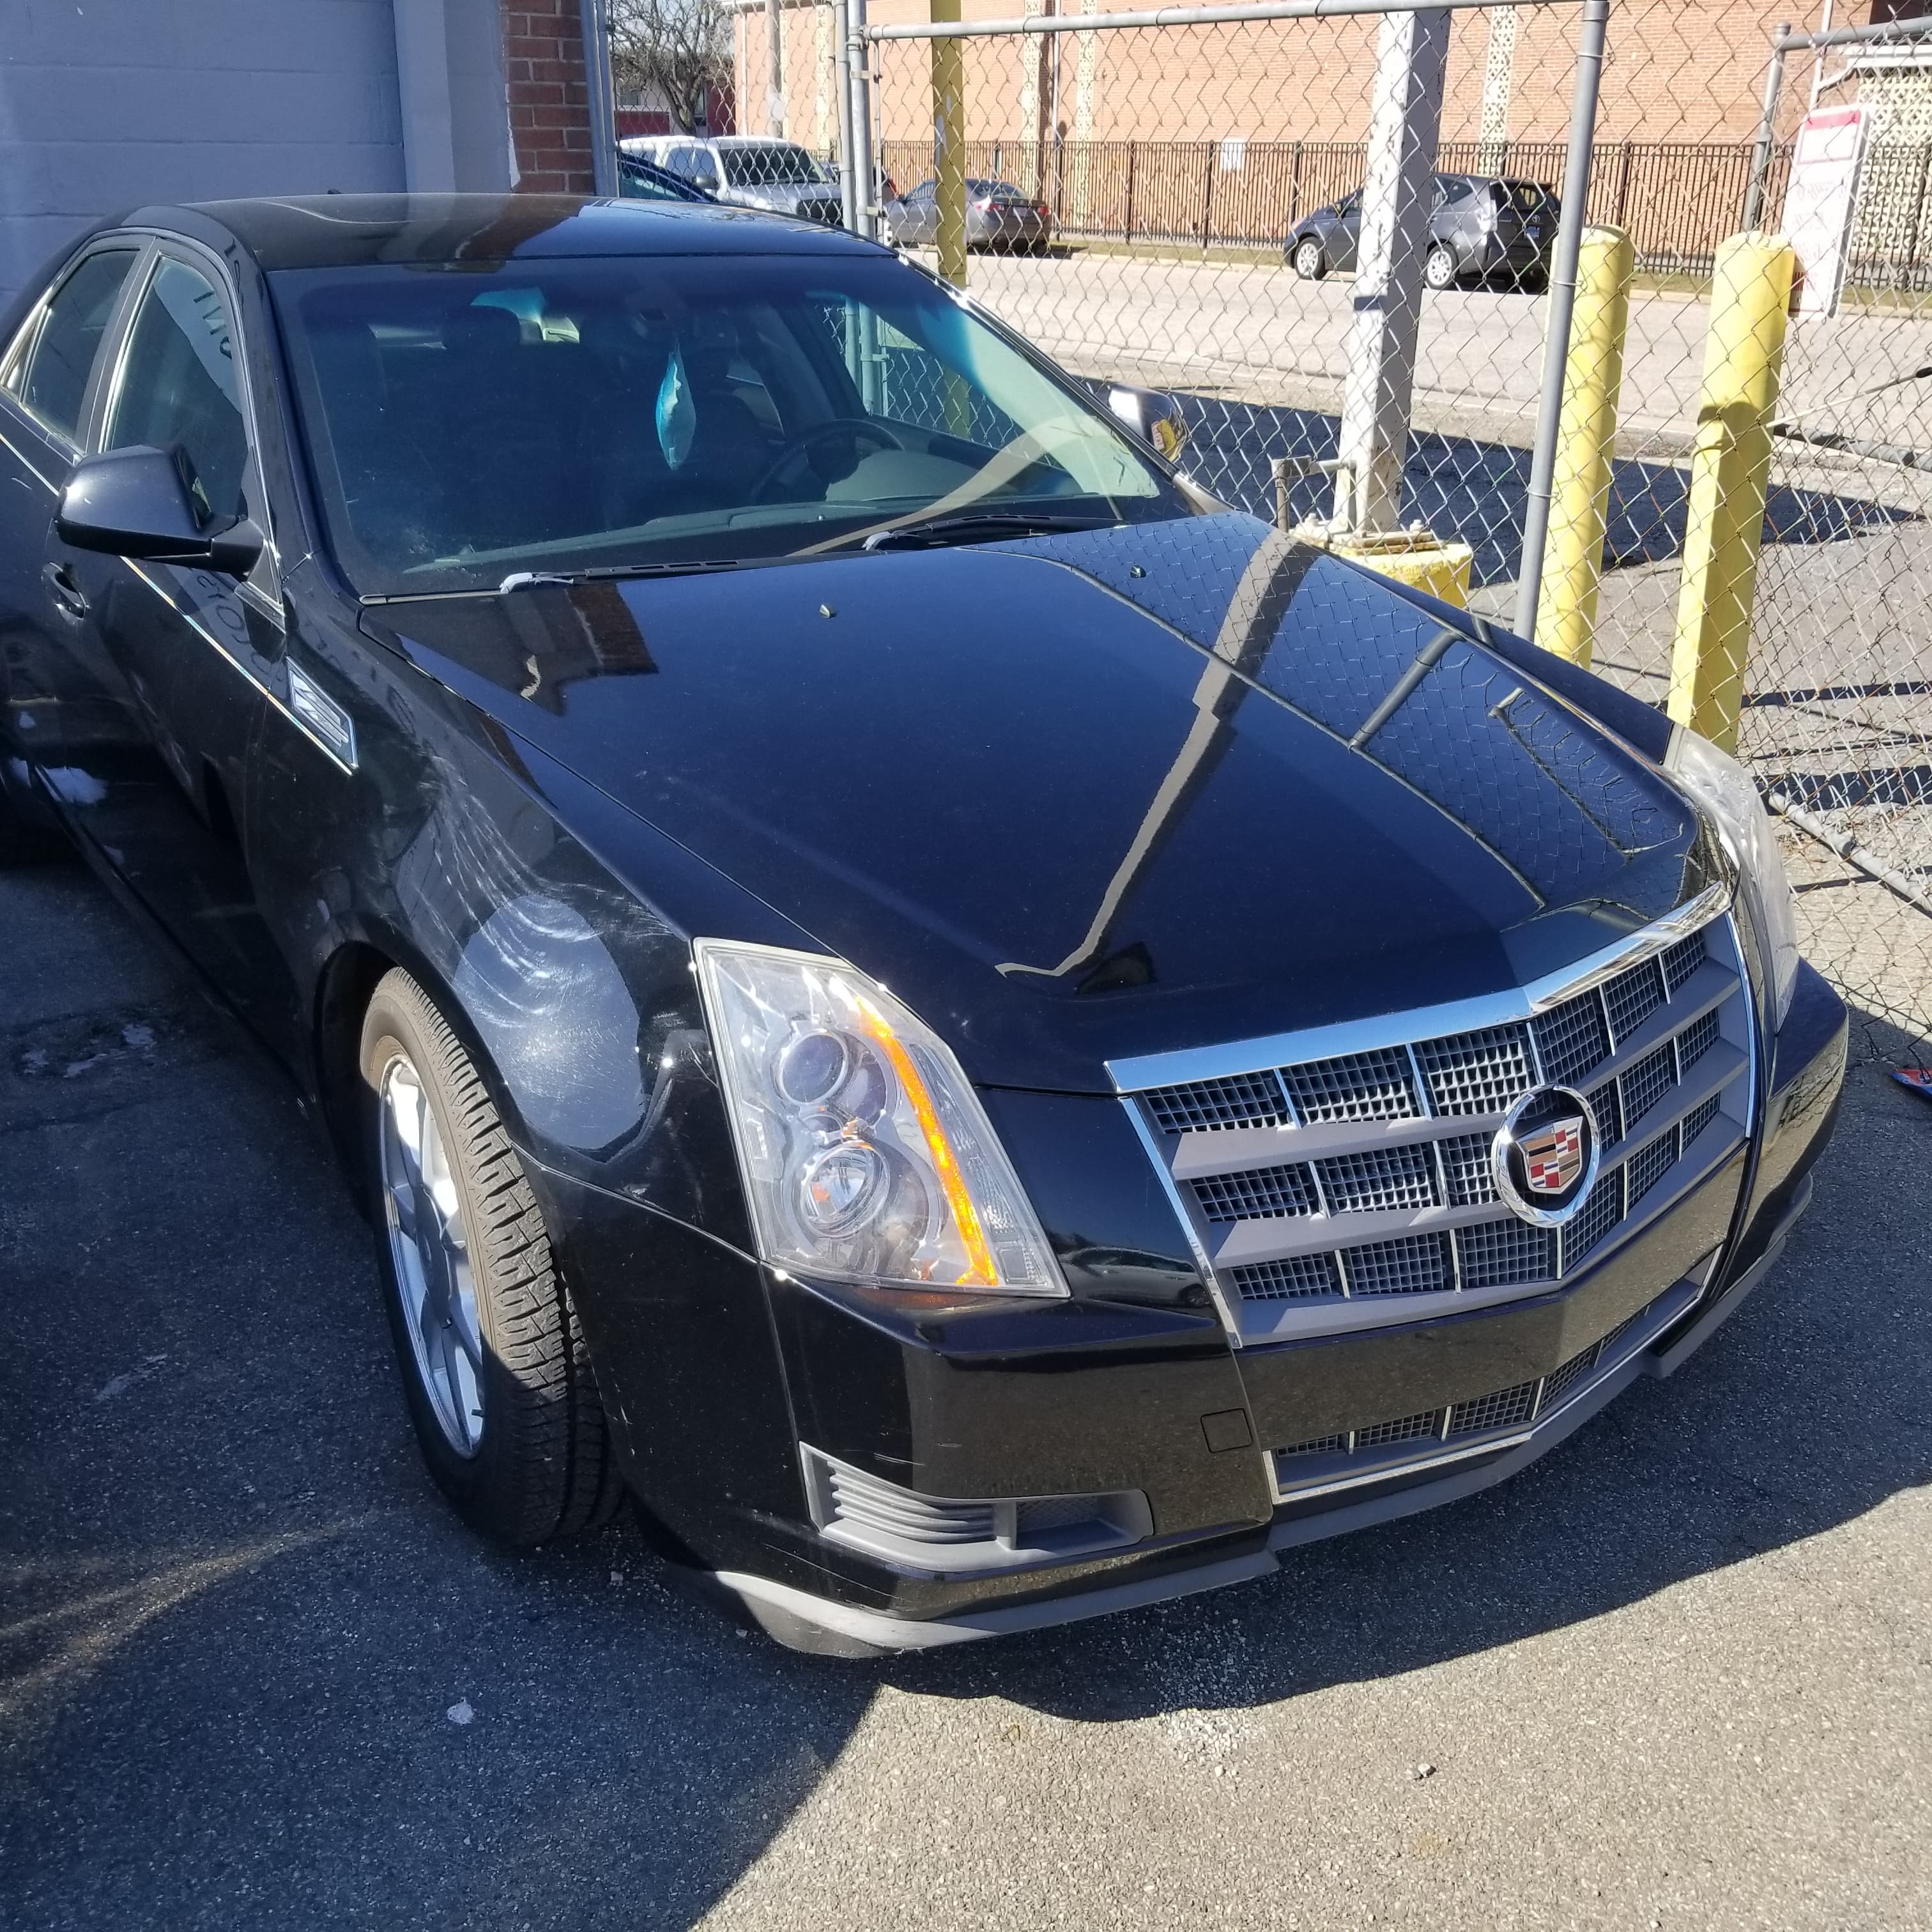 Best Auto Body Shop In Baltimore MD